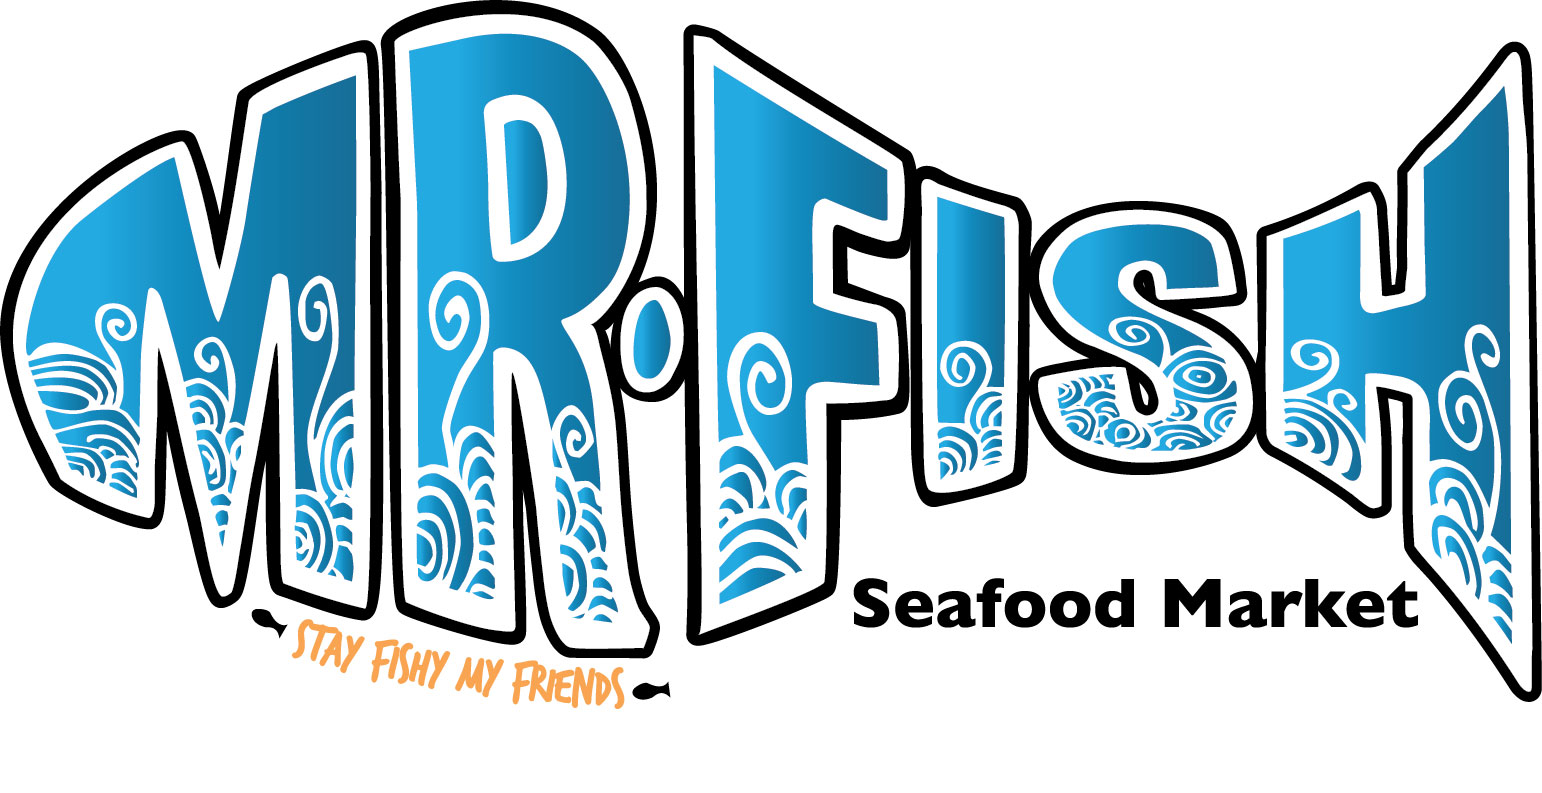 Best fresh seafood market in myrtle beach beach houses for Garcia s seafood grille fish market miami fl